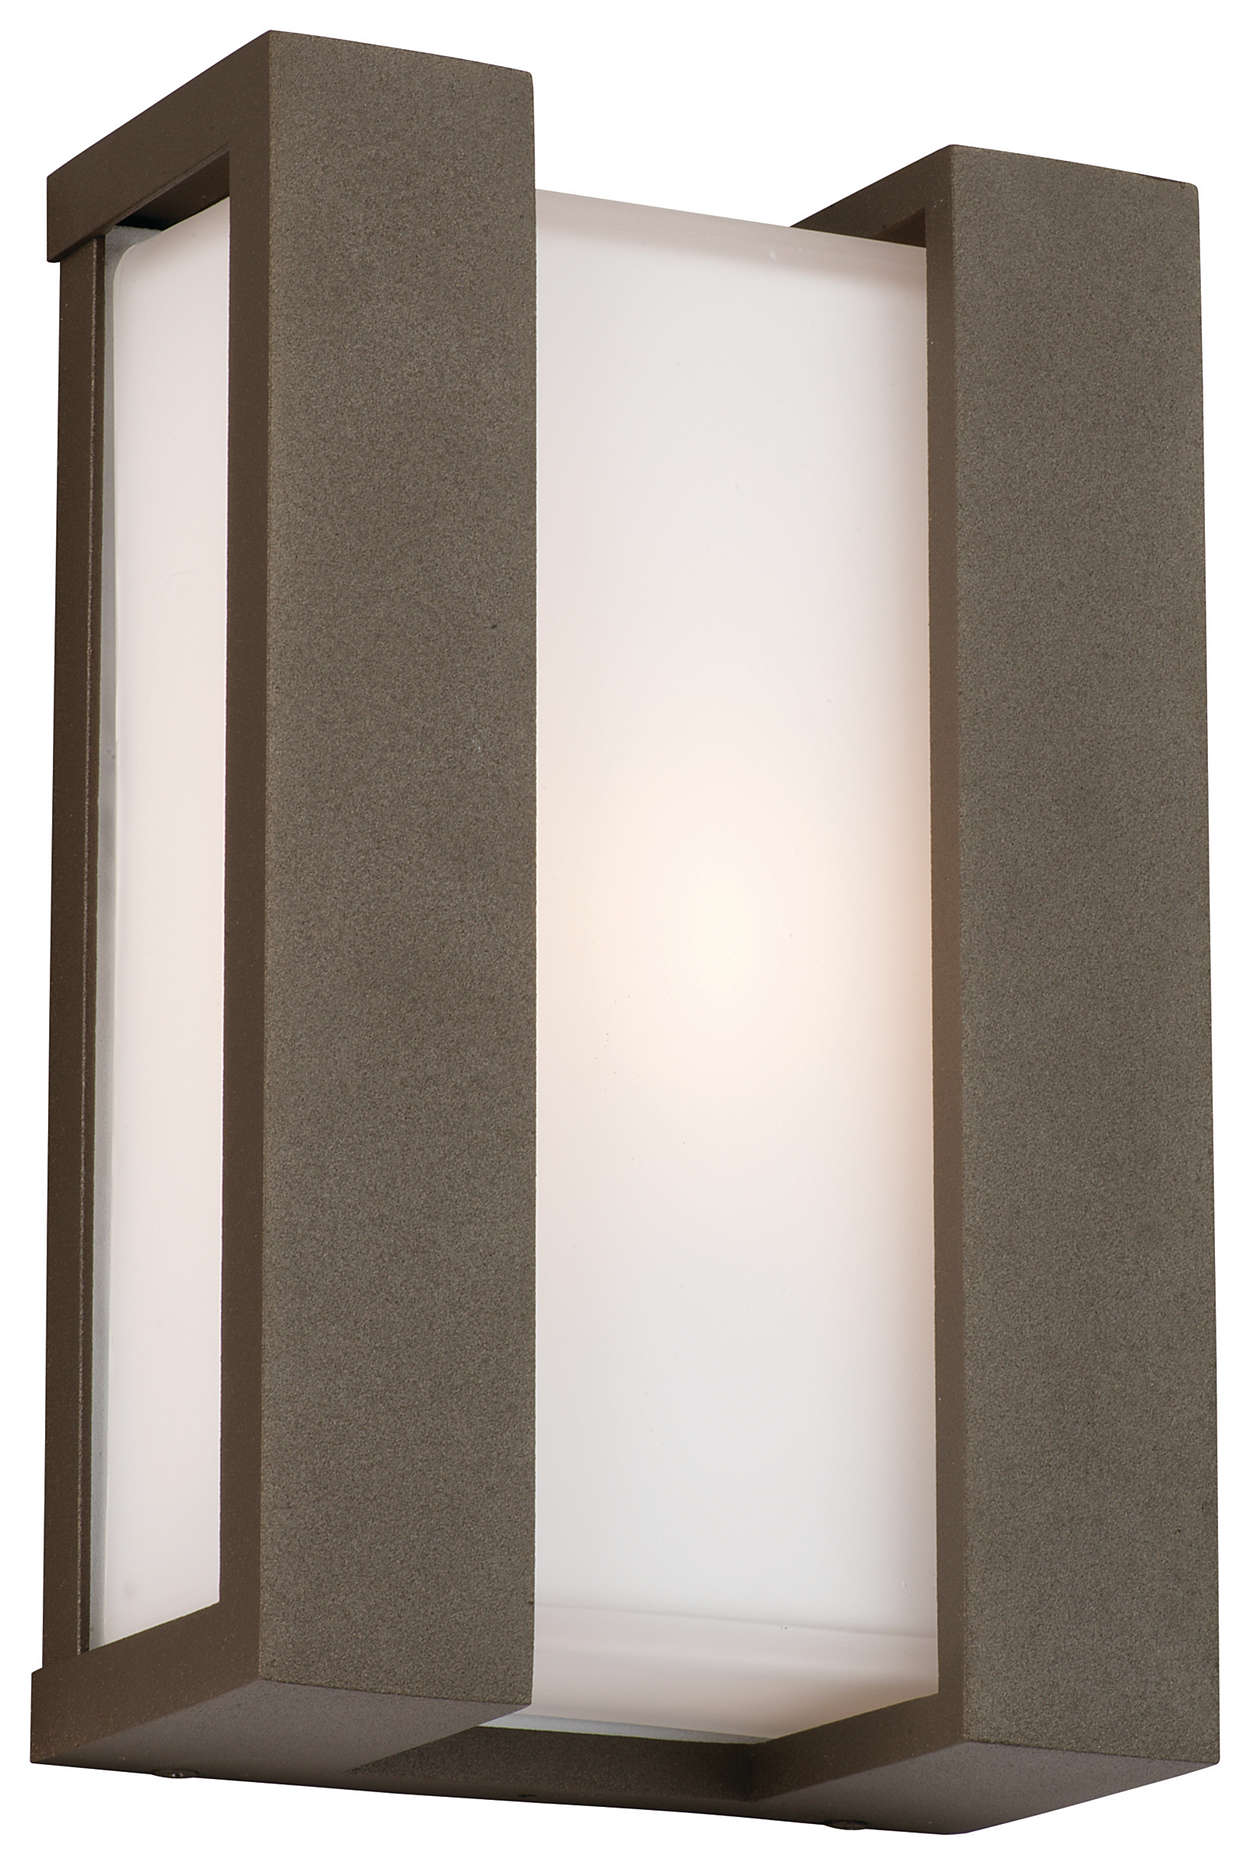 Newport 1-light Outdoor Wall in Bronze finish